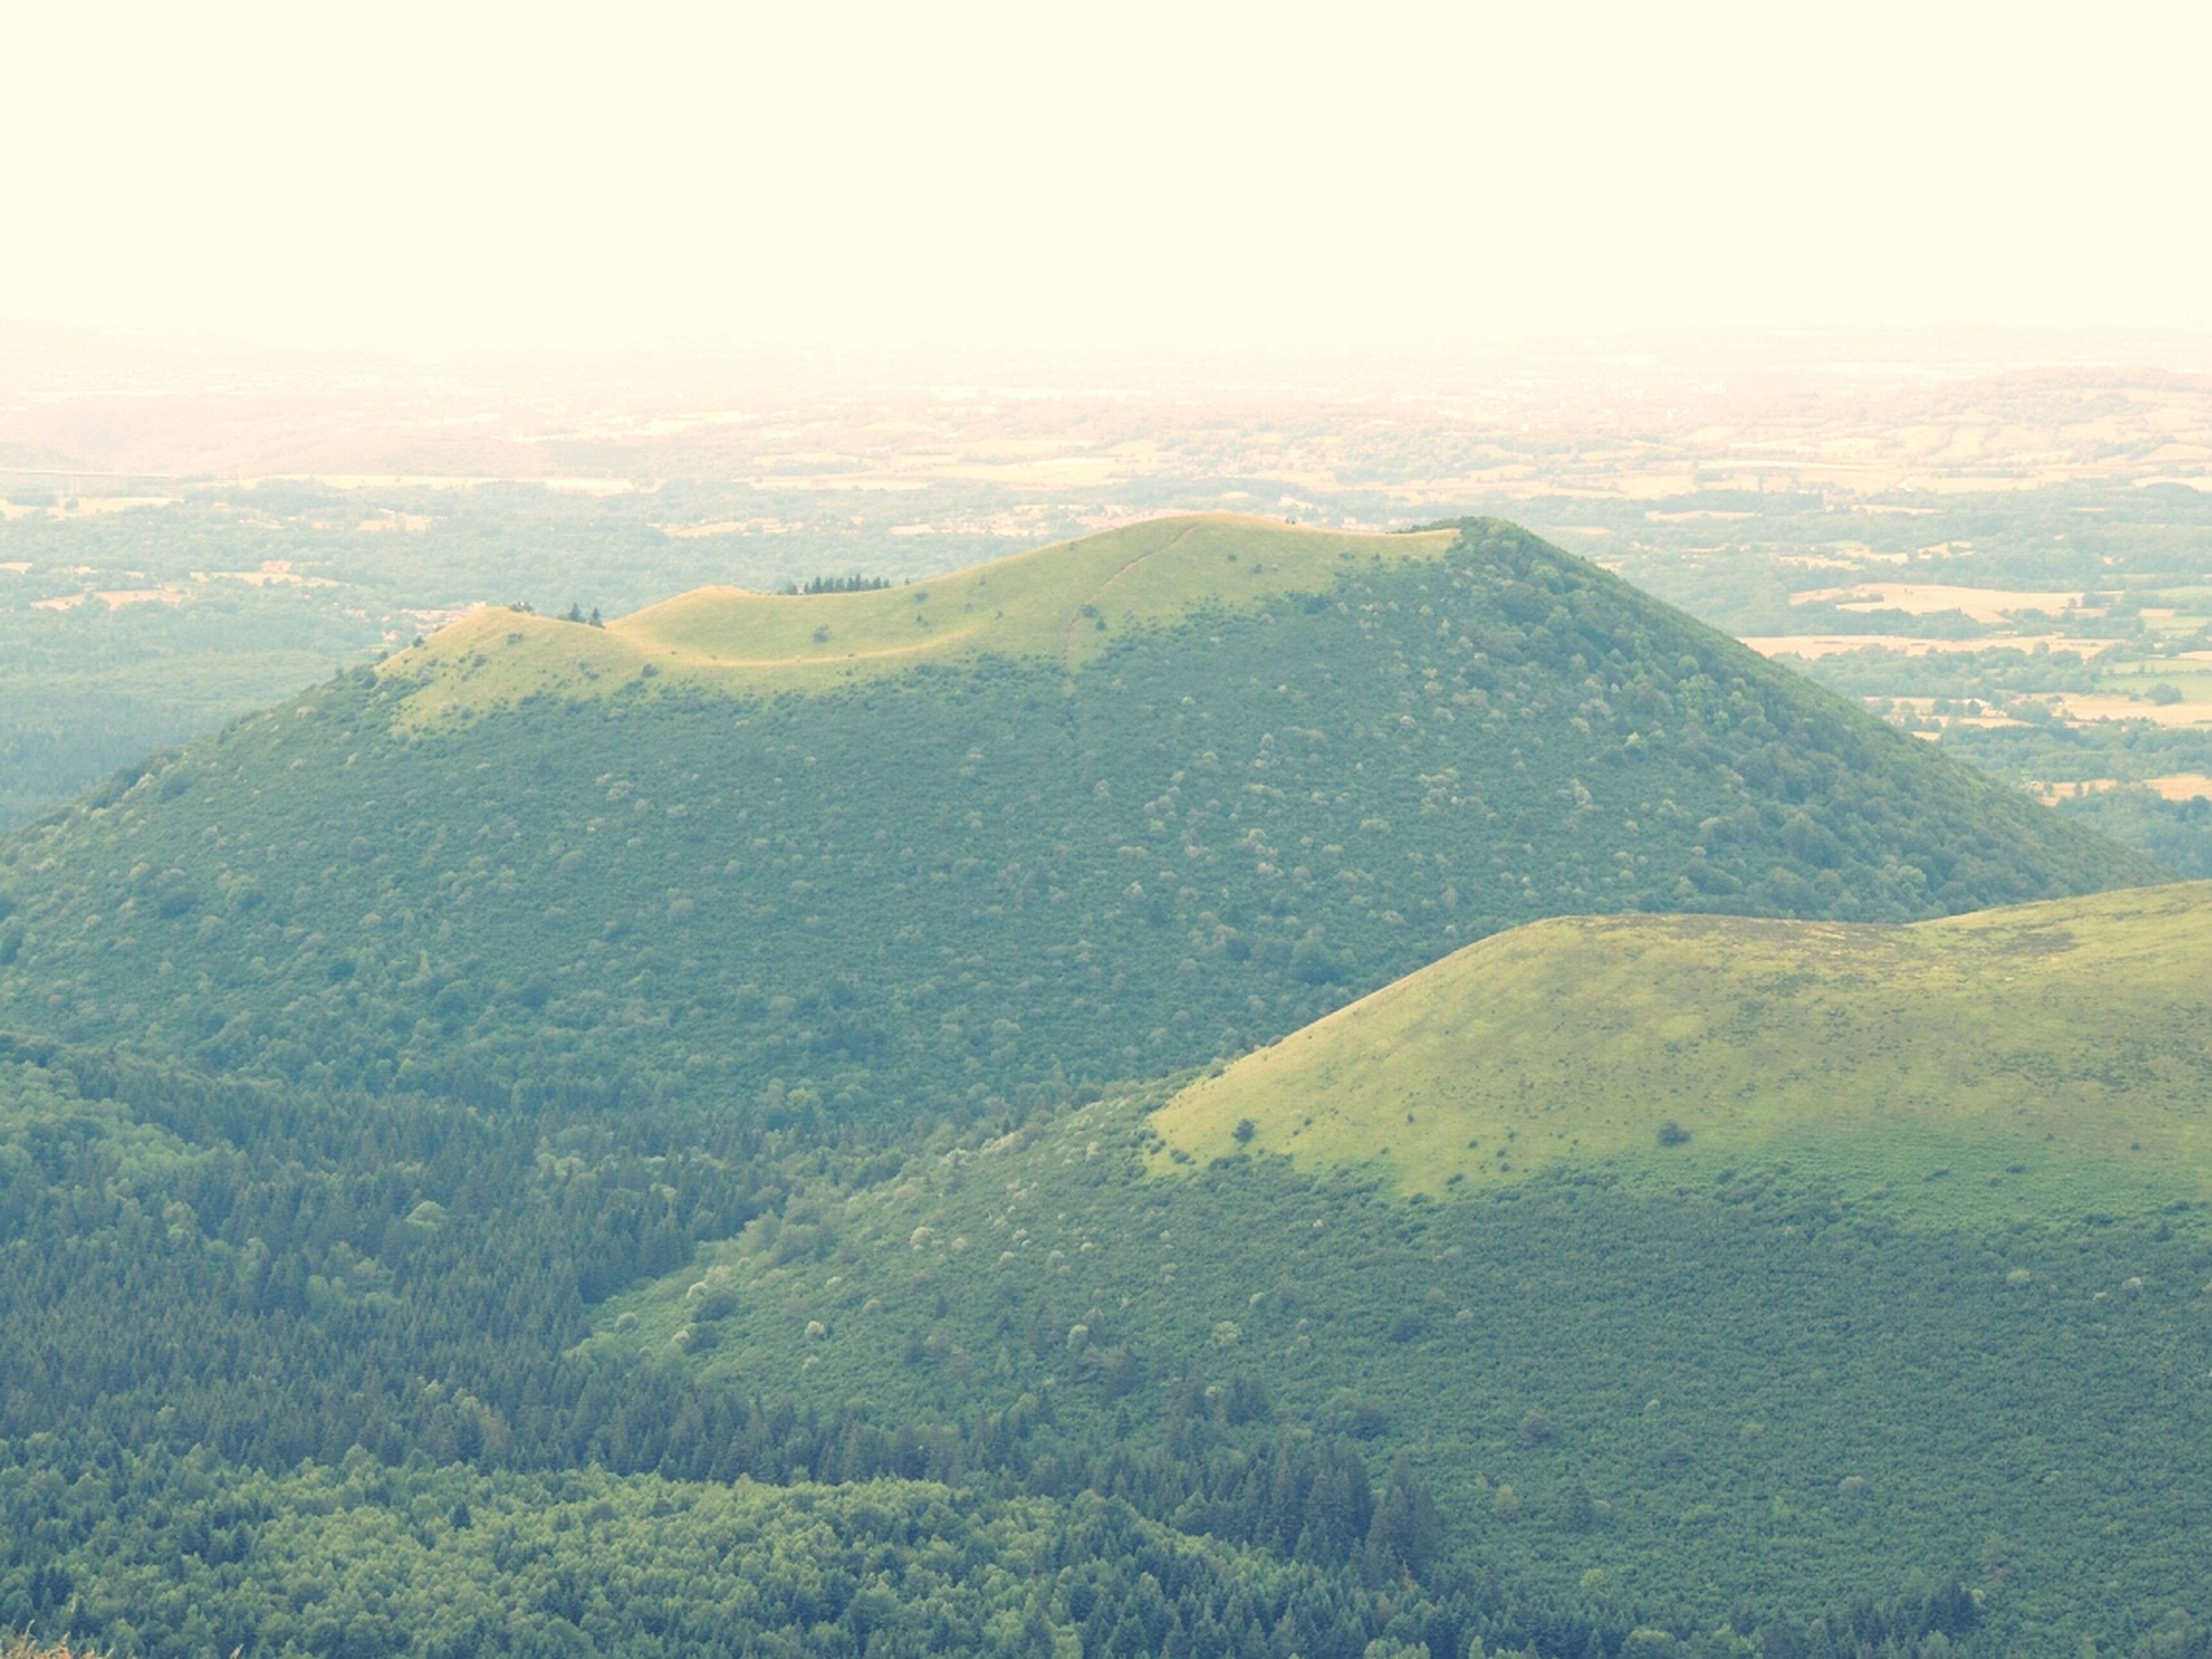 mountain, tranquil scene, scenics, tranquility, landscape, beauty in nature, nature, mountain range, idyllic, non-urban scene, high angle view, sky, fog, remote, day, aerial view, no people, outdoors, green color